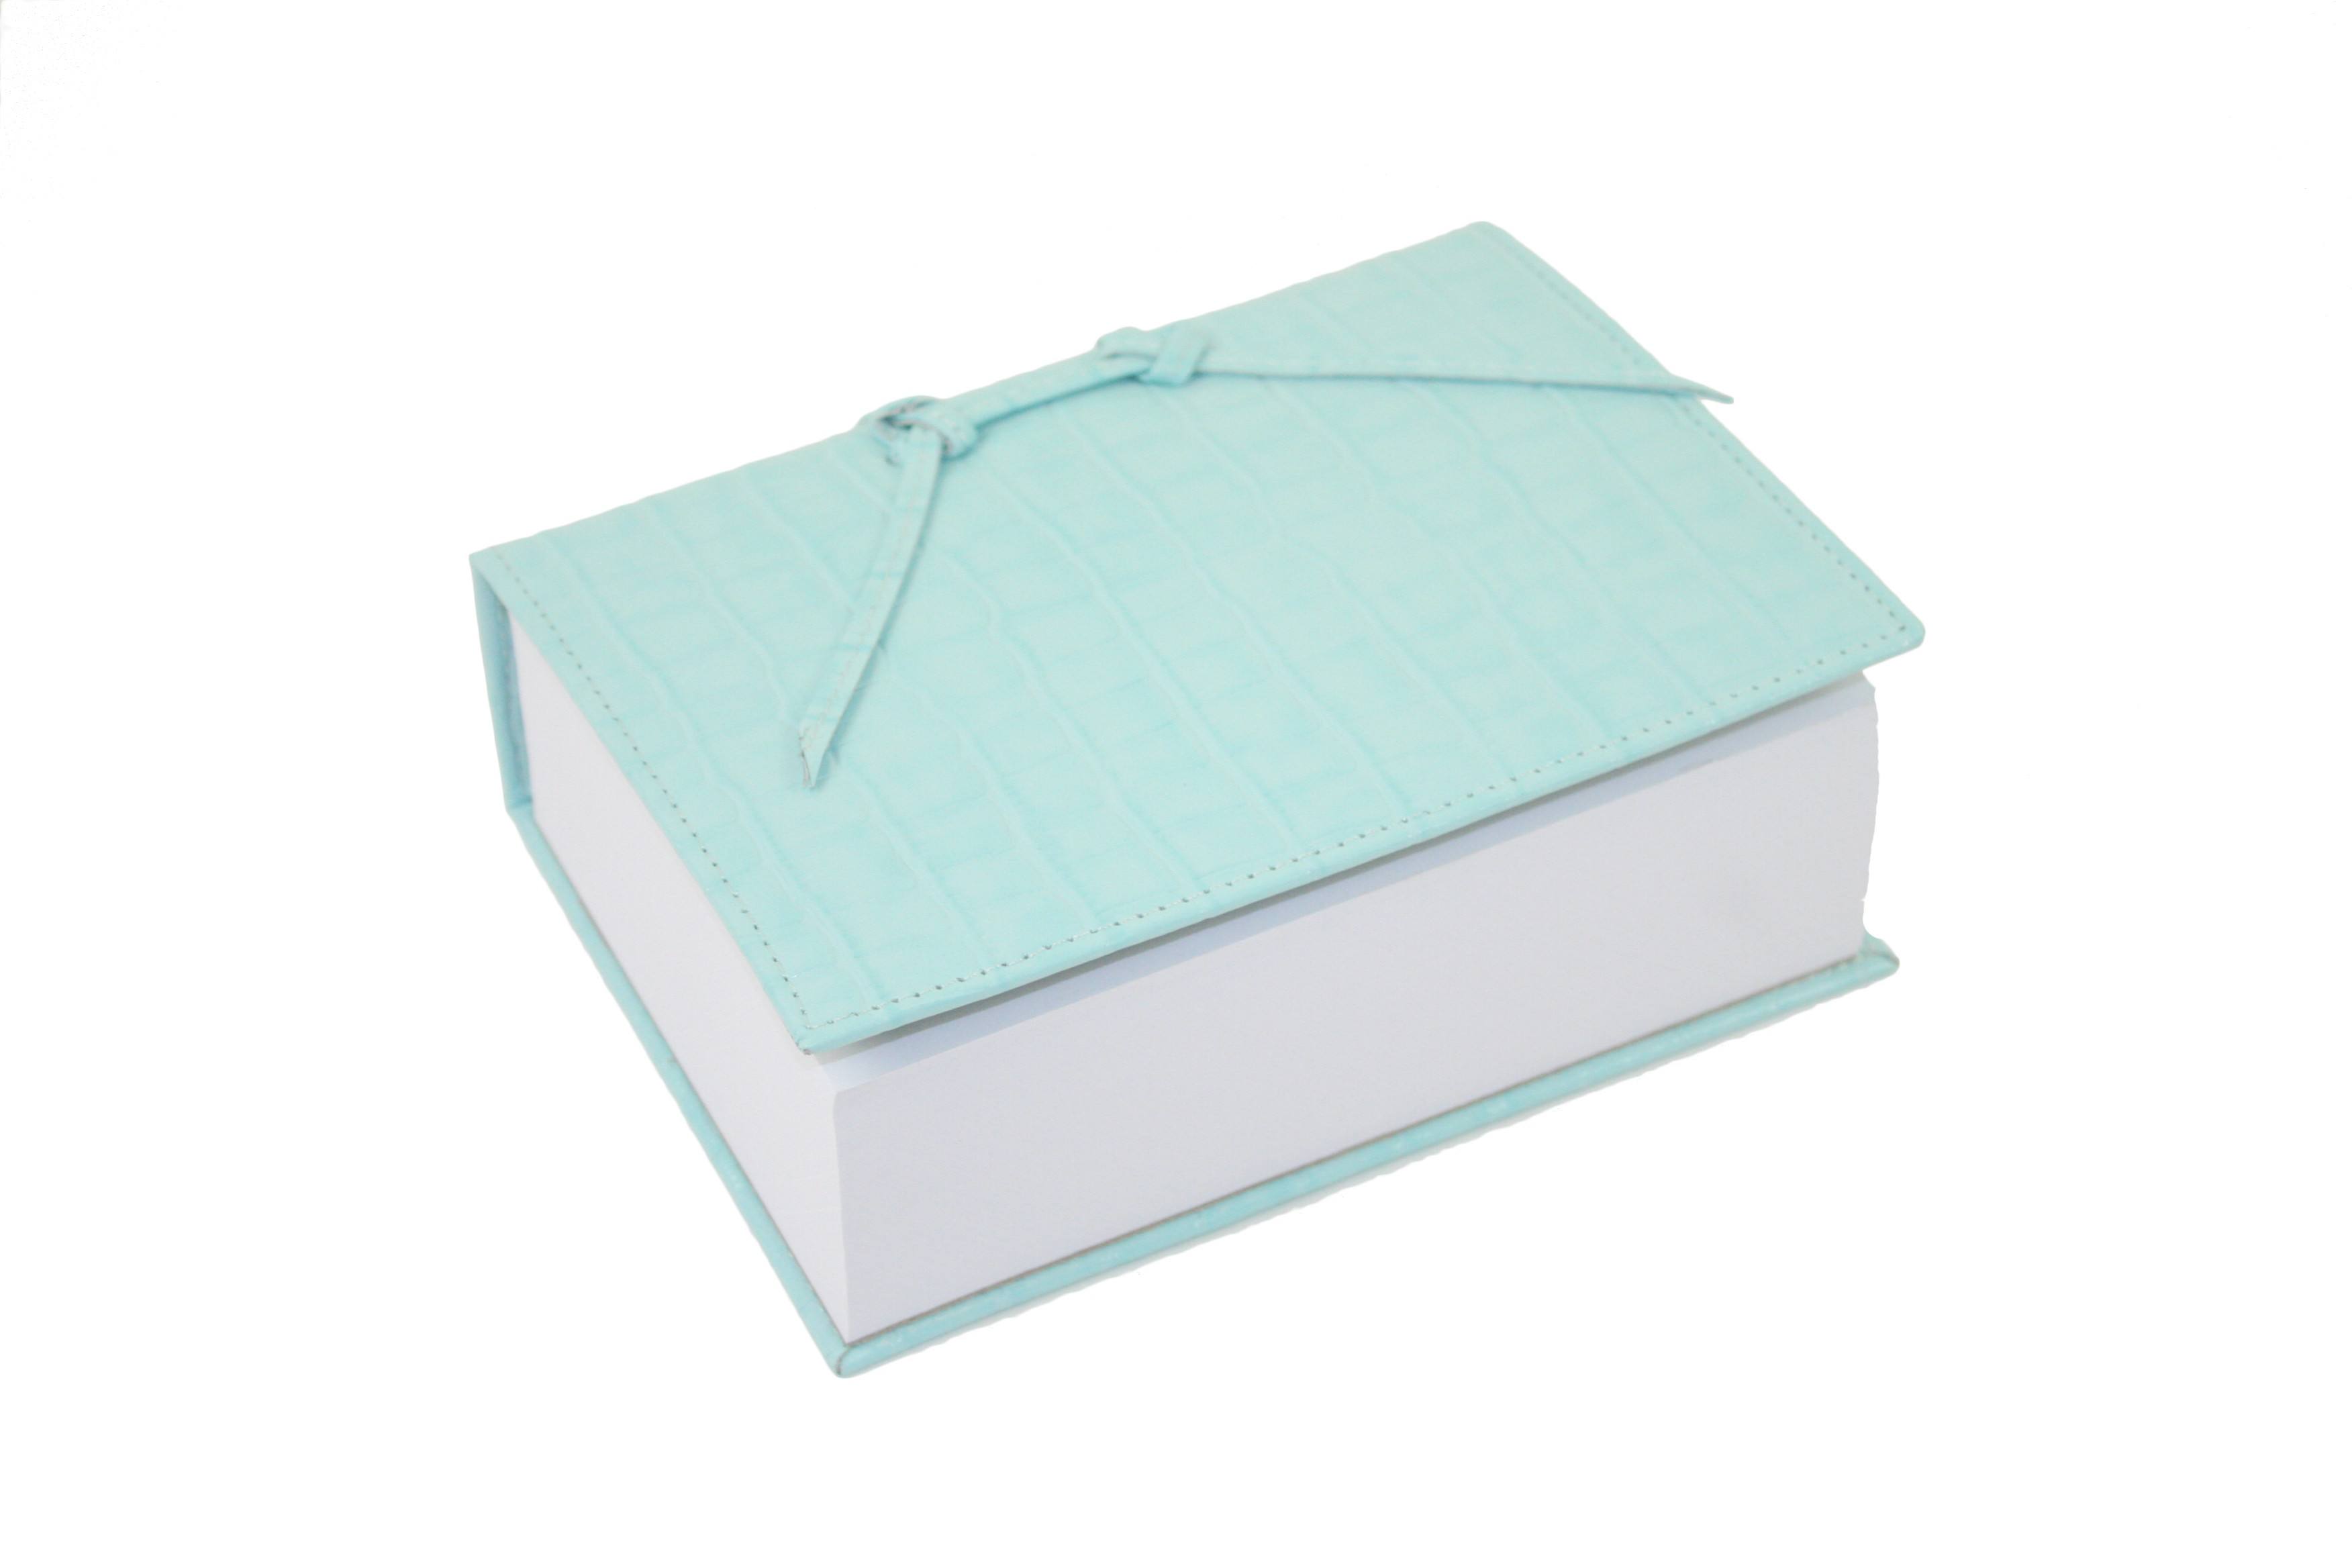 Turquoise Leather Croc Think Pad